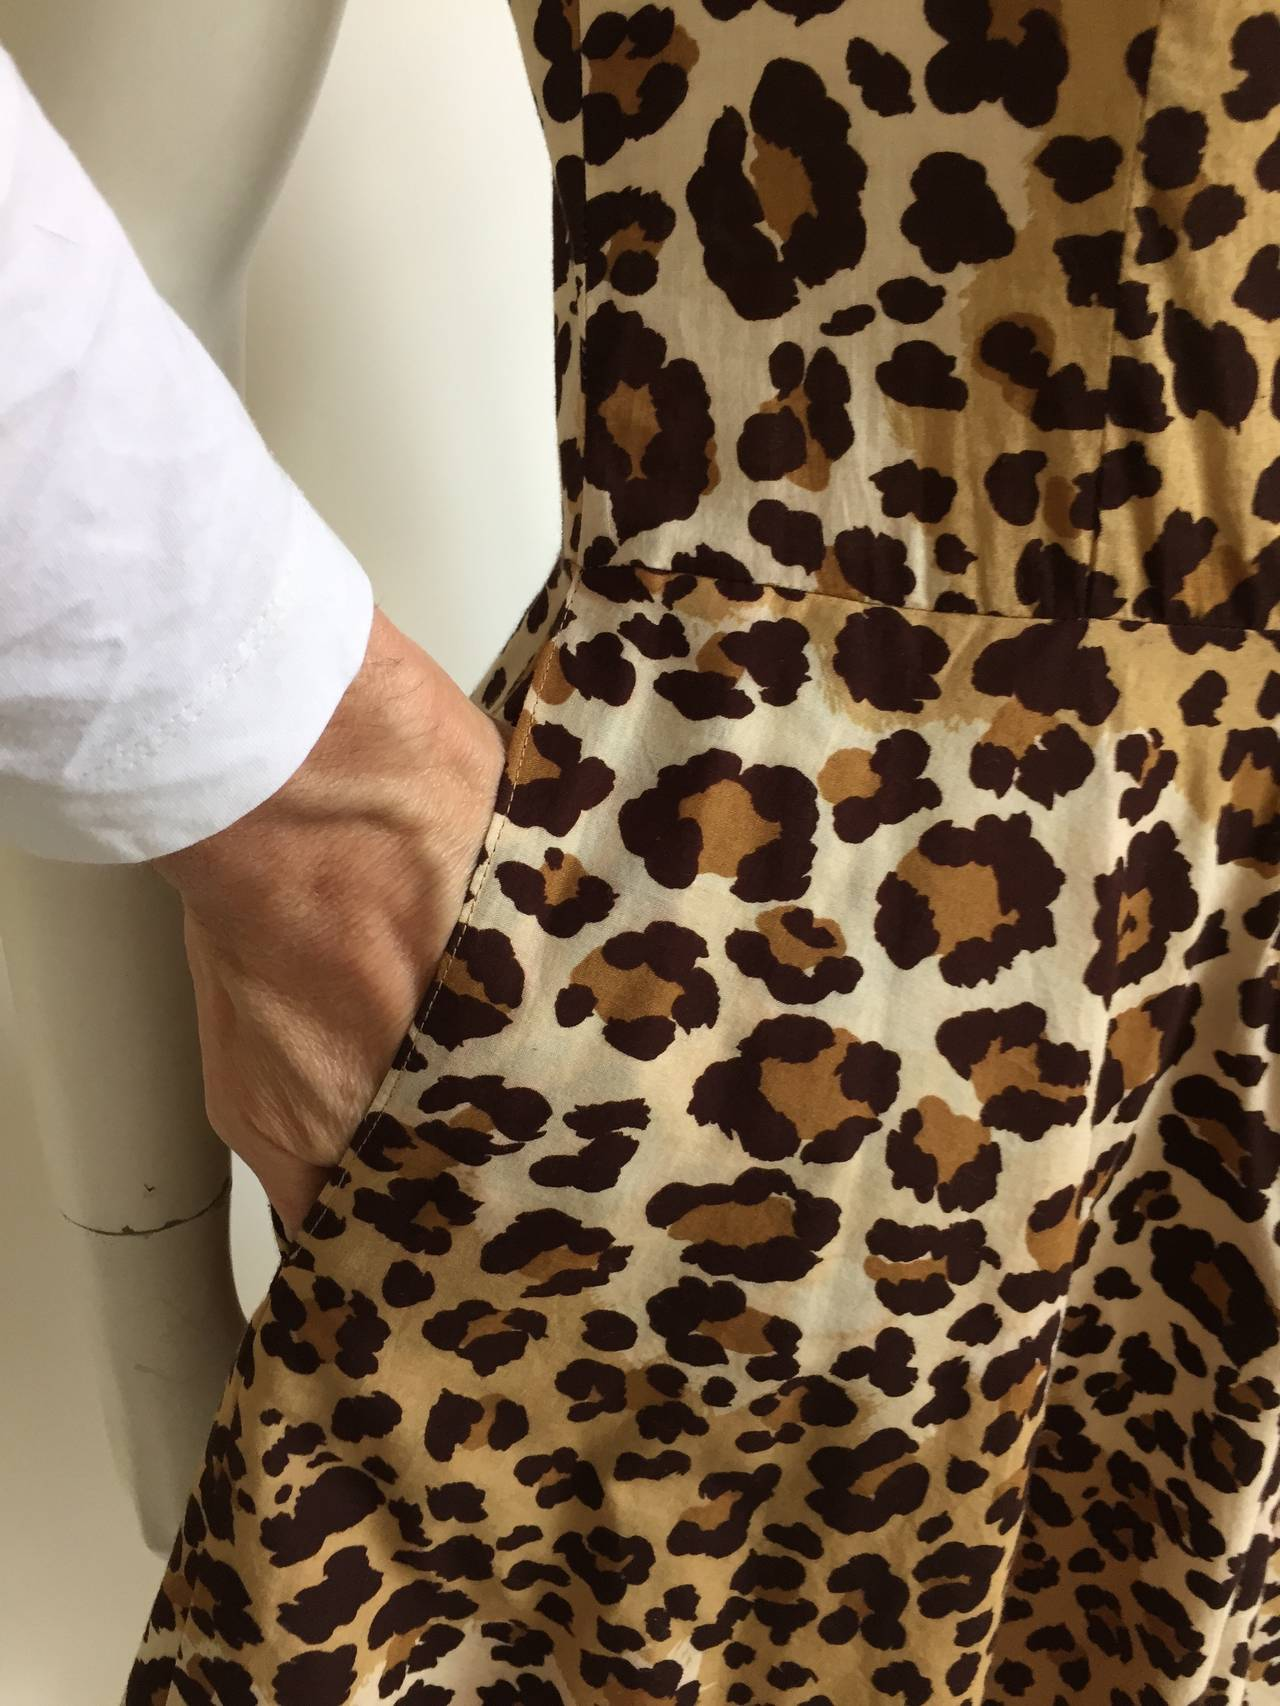 Moschino cheetah print dress with pockets size 6. 6